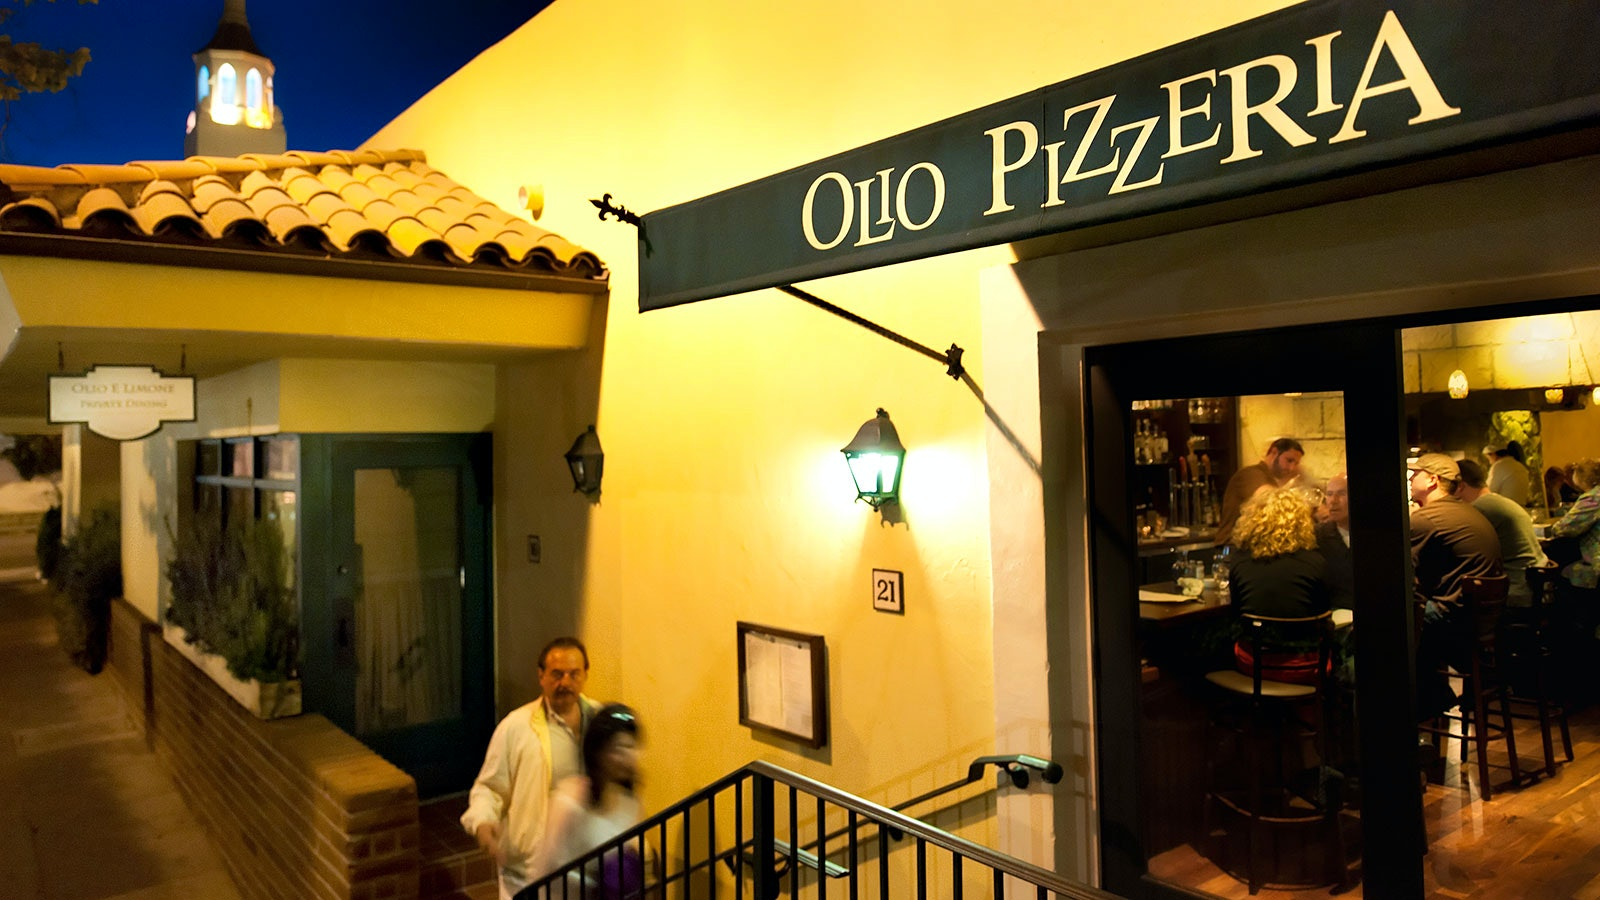 The entryway and sign of Olio Pizzeria